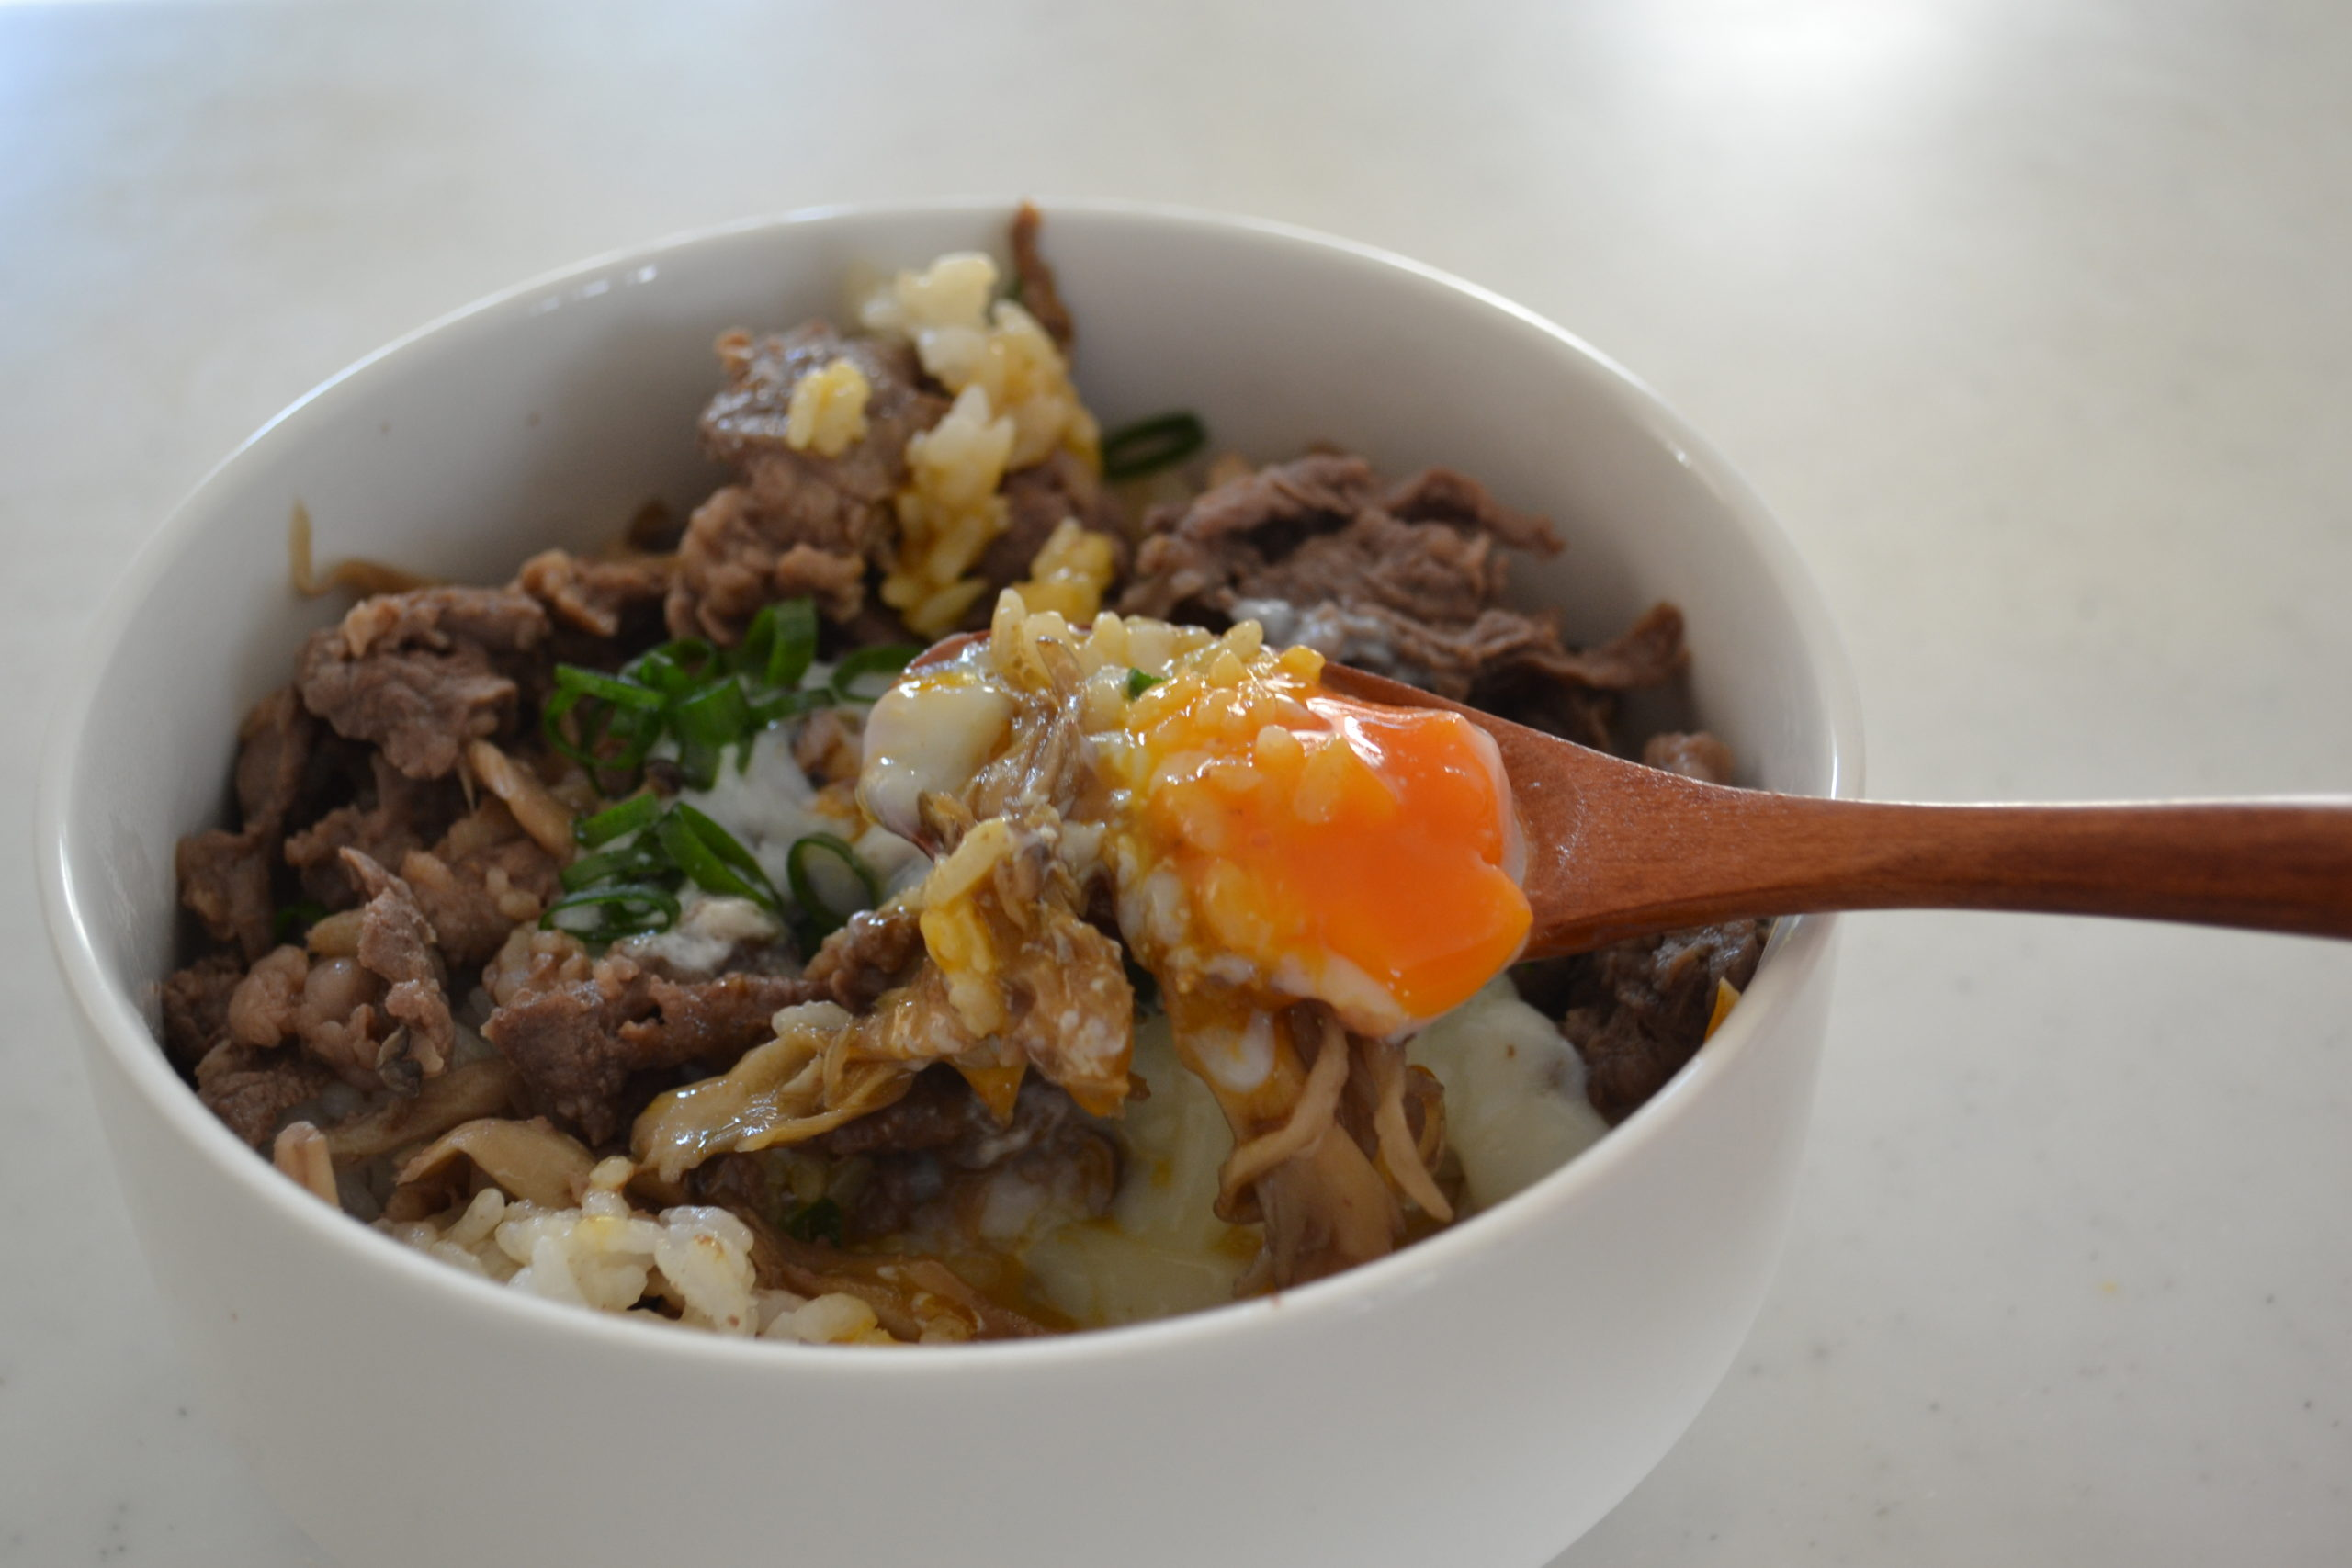 Freezer Meal Prep.★Beef and Mushroom rice bowl★Easy MEAL PLAN for STAY AT HOME!